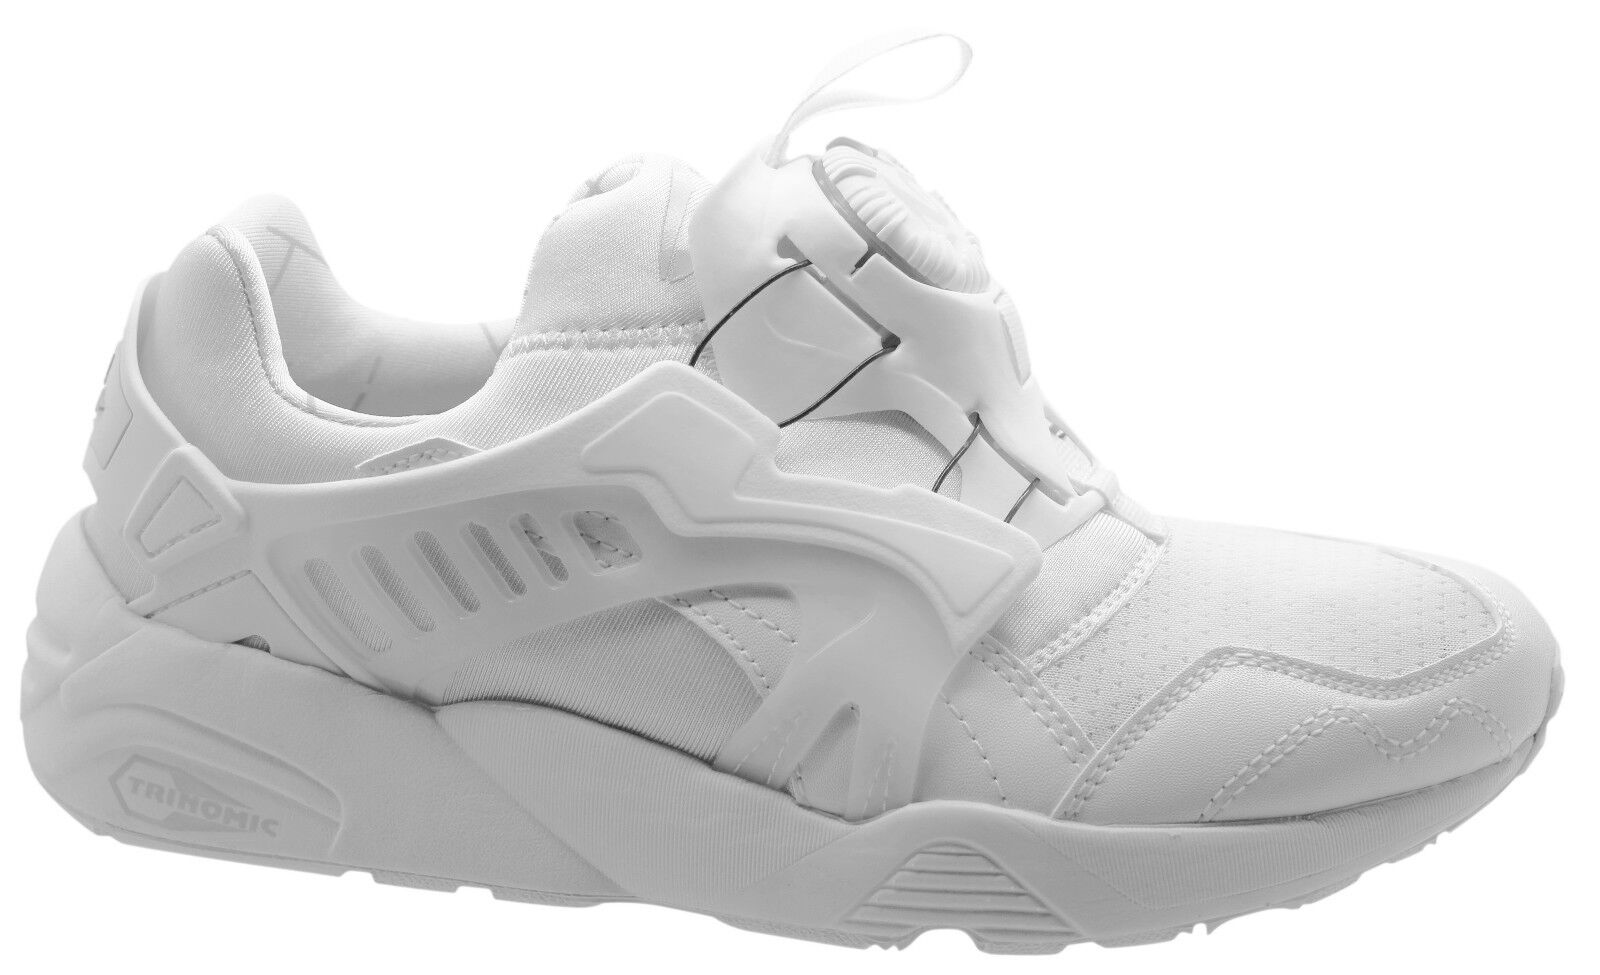 Puma Trinomic Disc Blaze Updated Core Mens Trainers Slip On Shoes 359516 03 P2